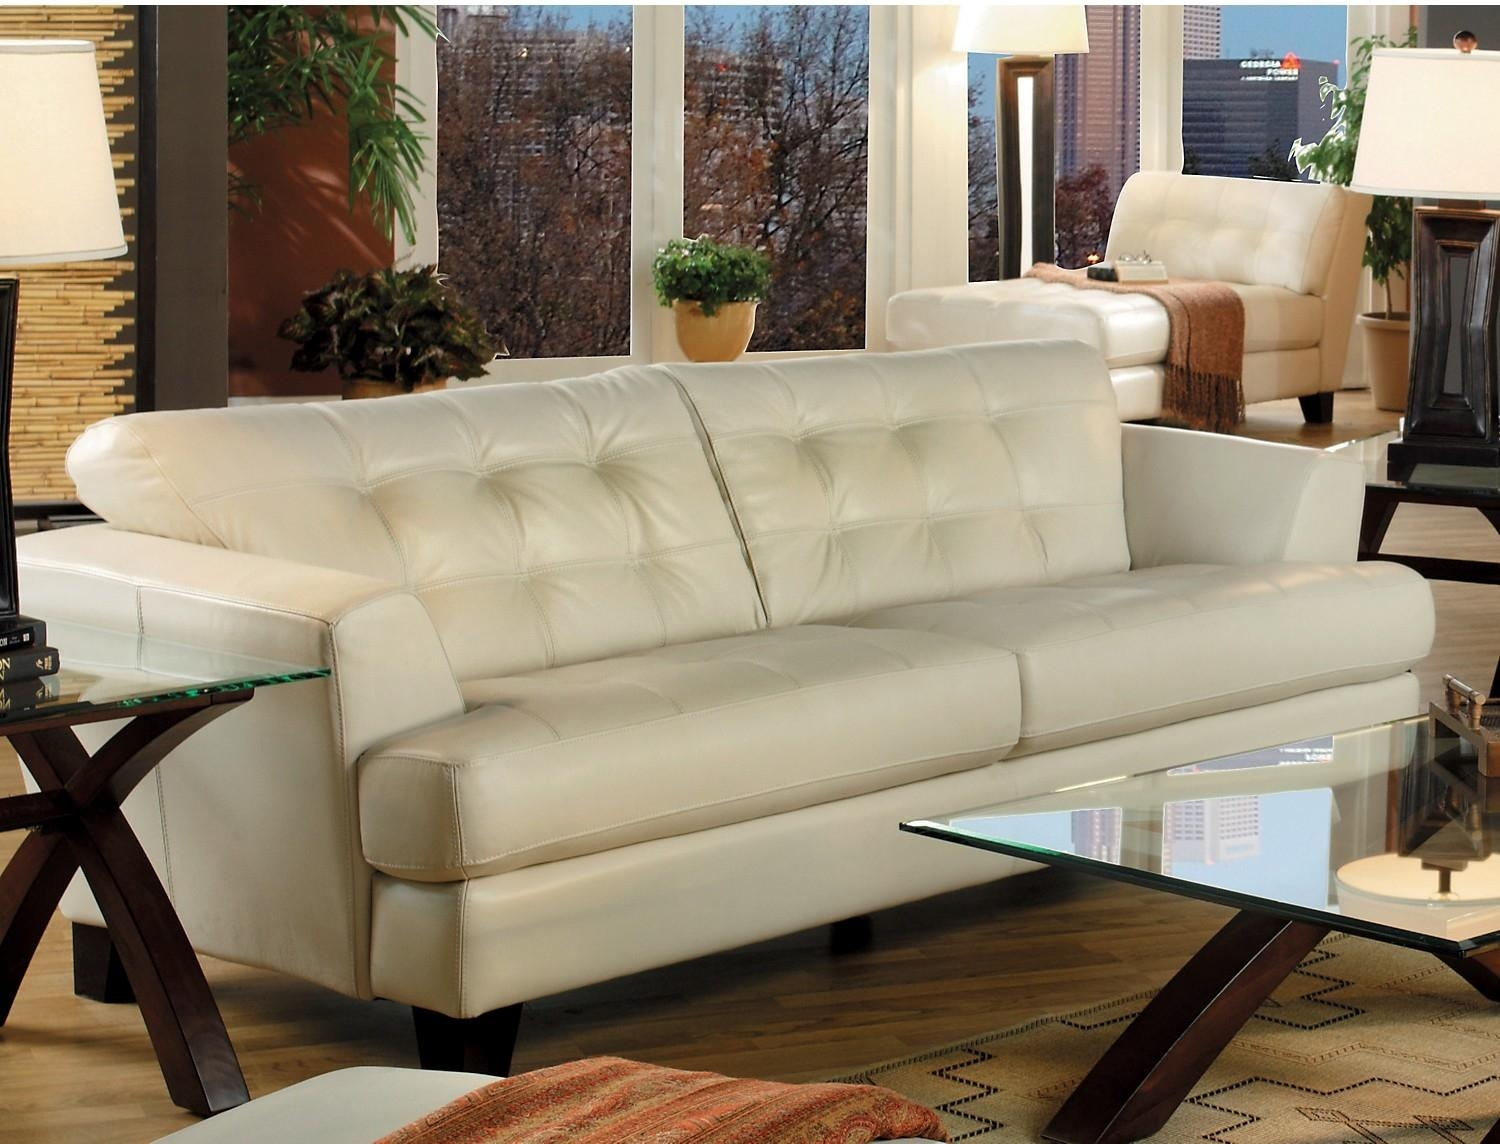 Furniture: Cindy Crawford Sectional Sofa For Elegant Living Room Inside Cindy Crawford Microfiber Sofas (Image 14 of 20)